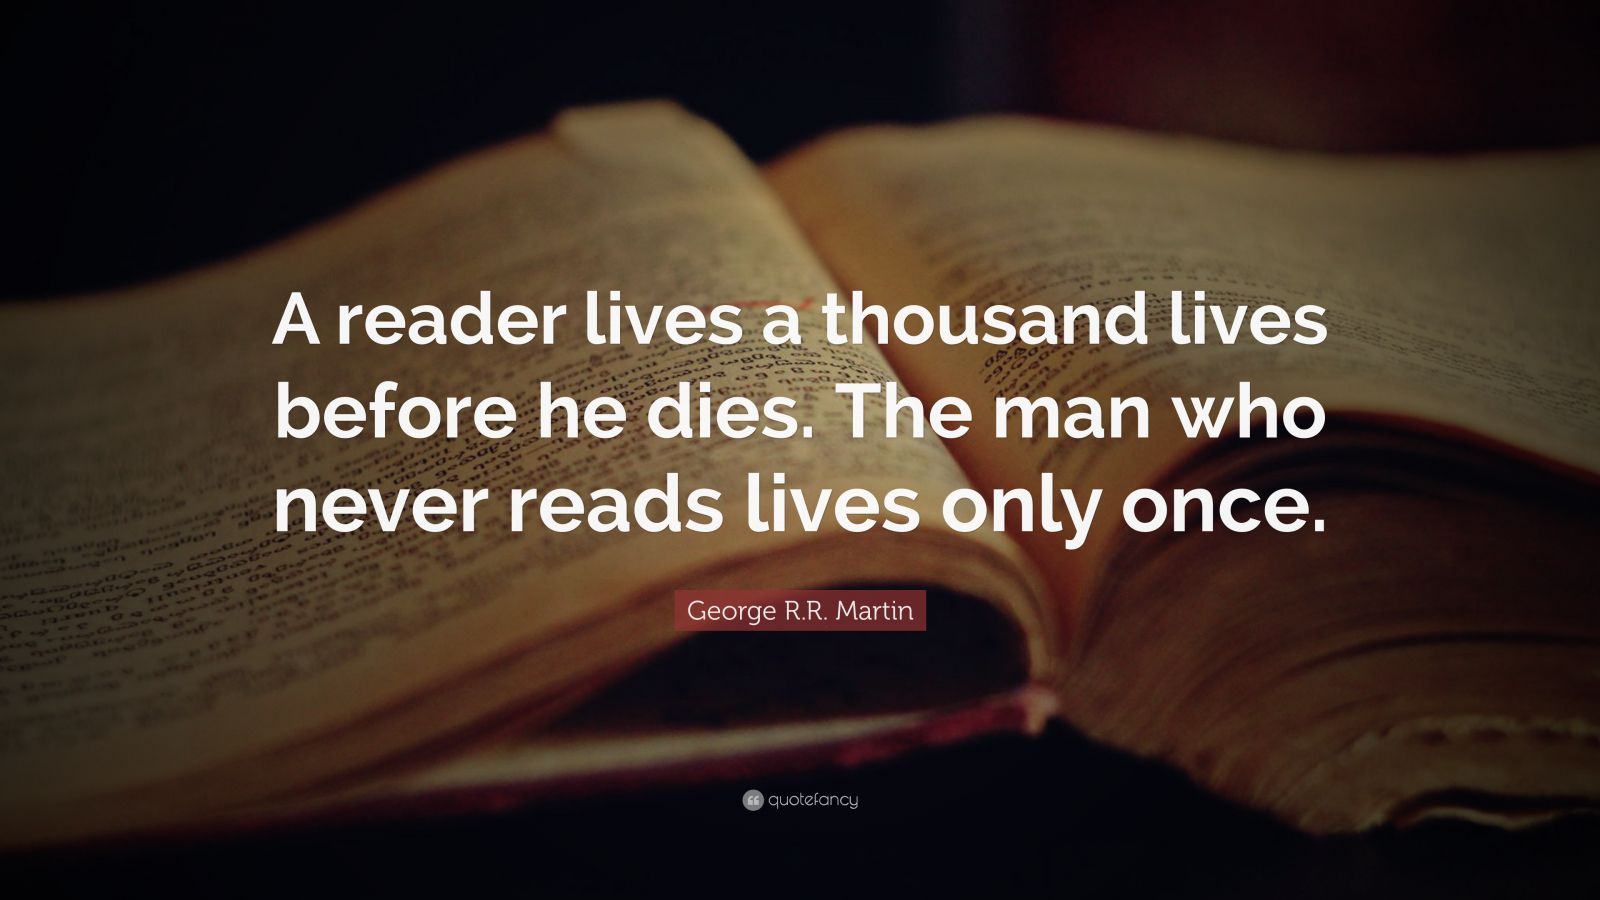 Malcolm X Wallpaper Quotes George R R Martin Quote A Reader Lives A Thousand Lives